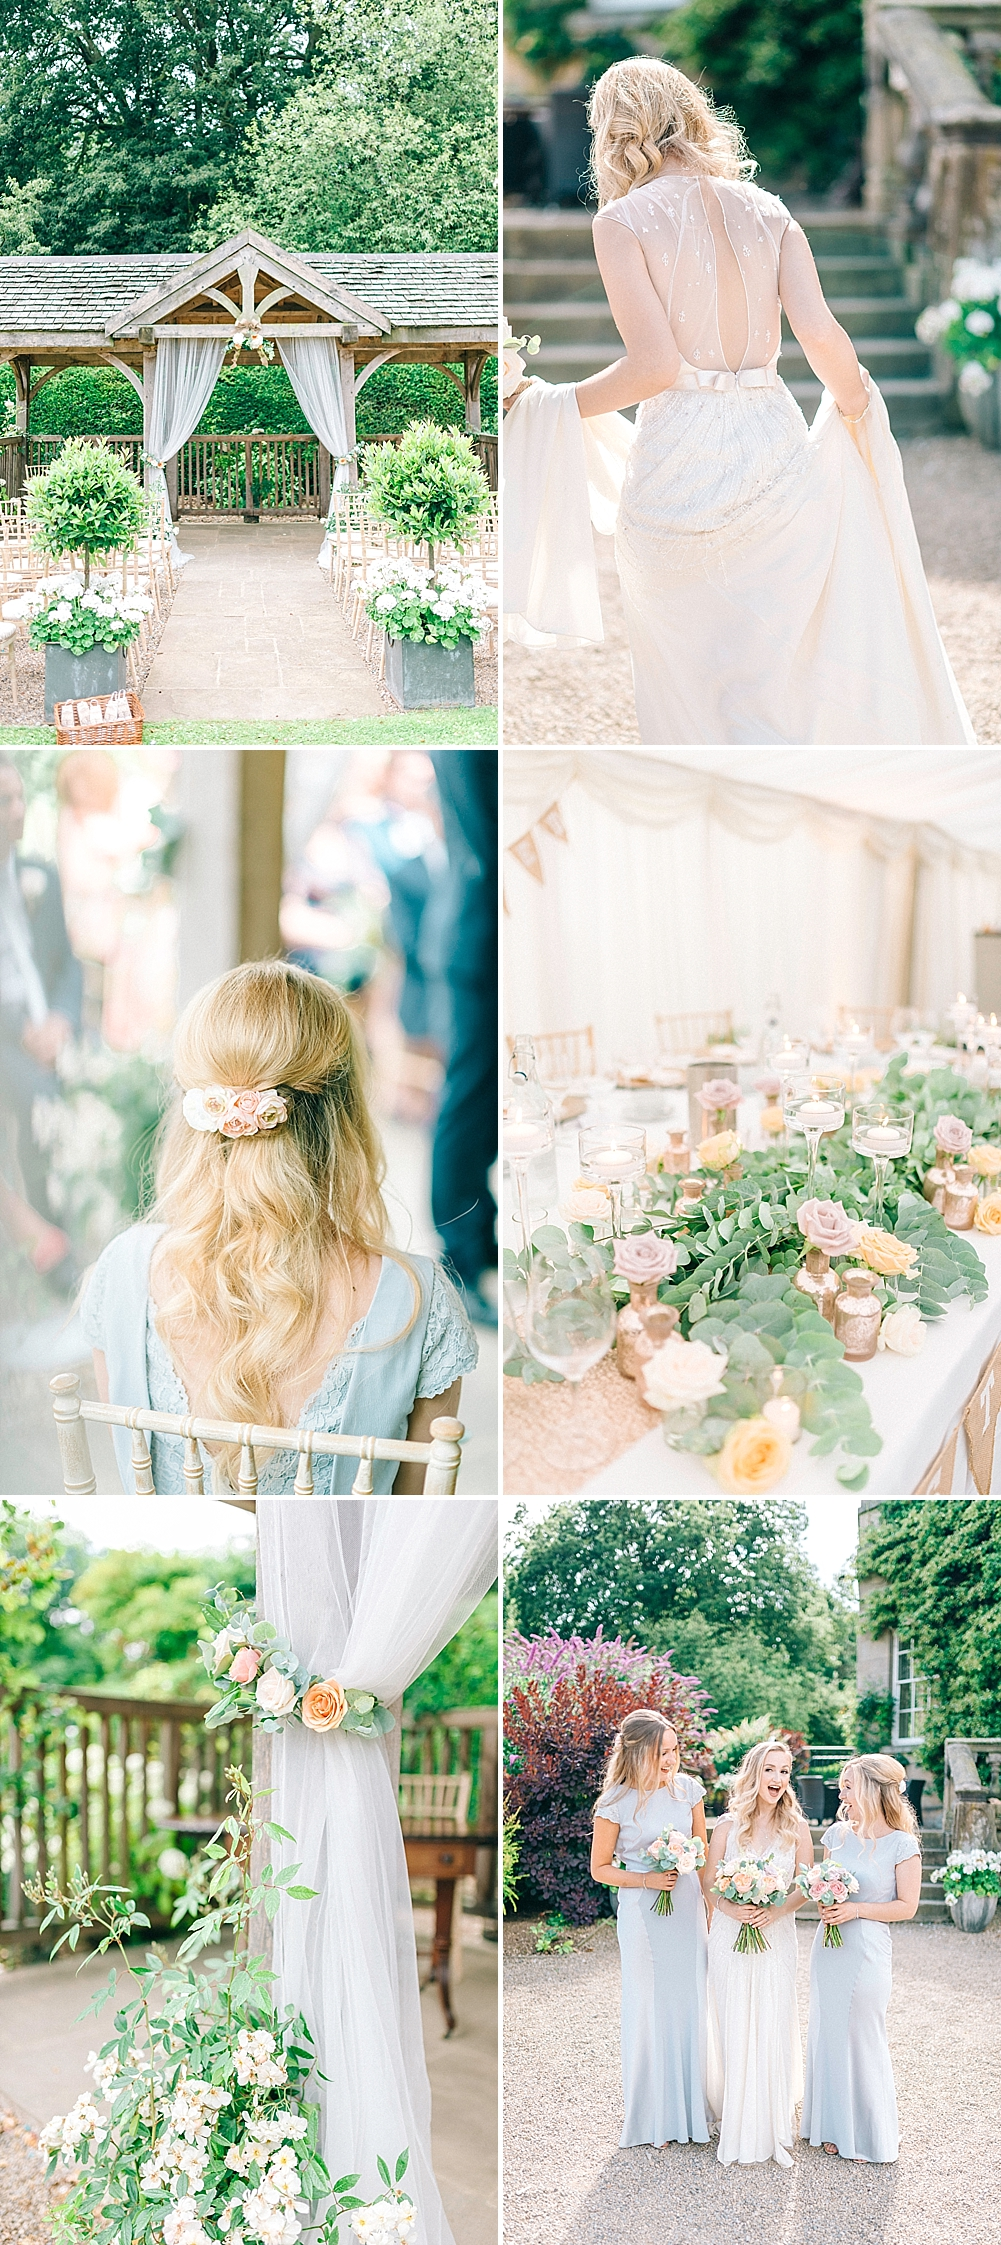 Outdoor Pastel Wedding at Middleton Lodge by Sarah-Jane Ethan Photography